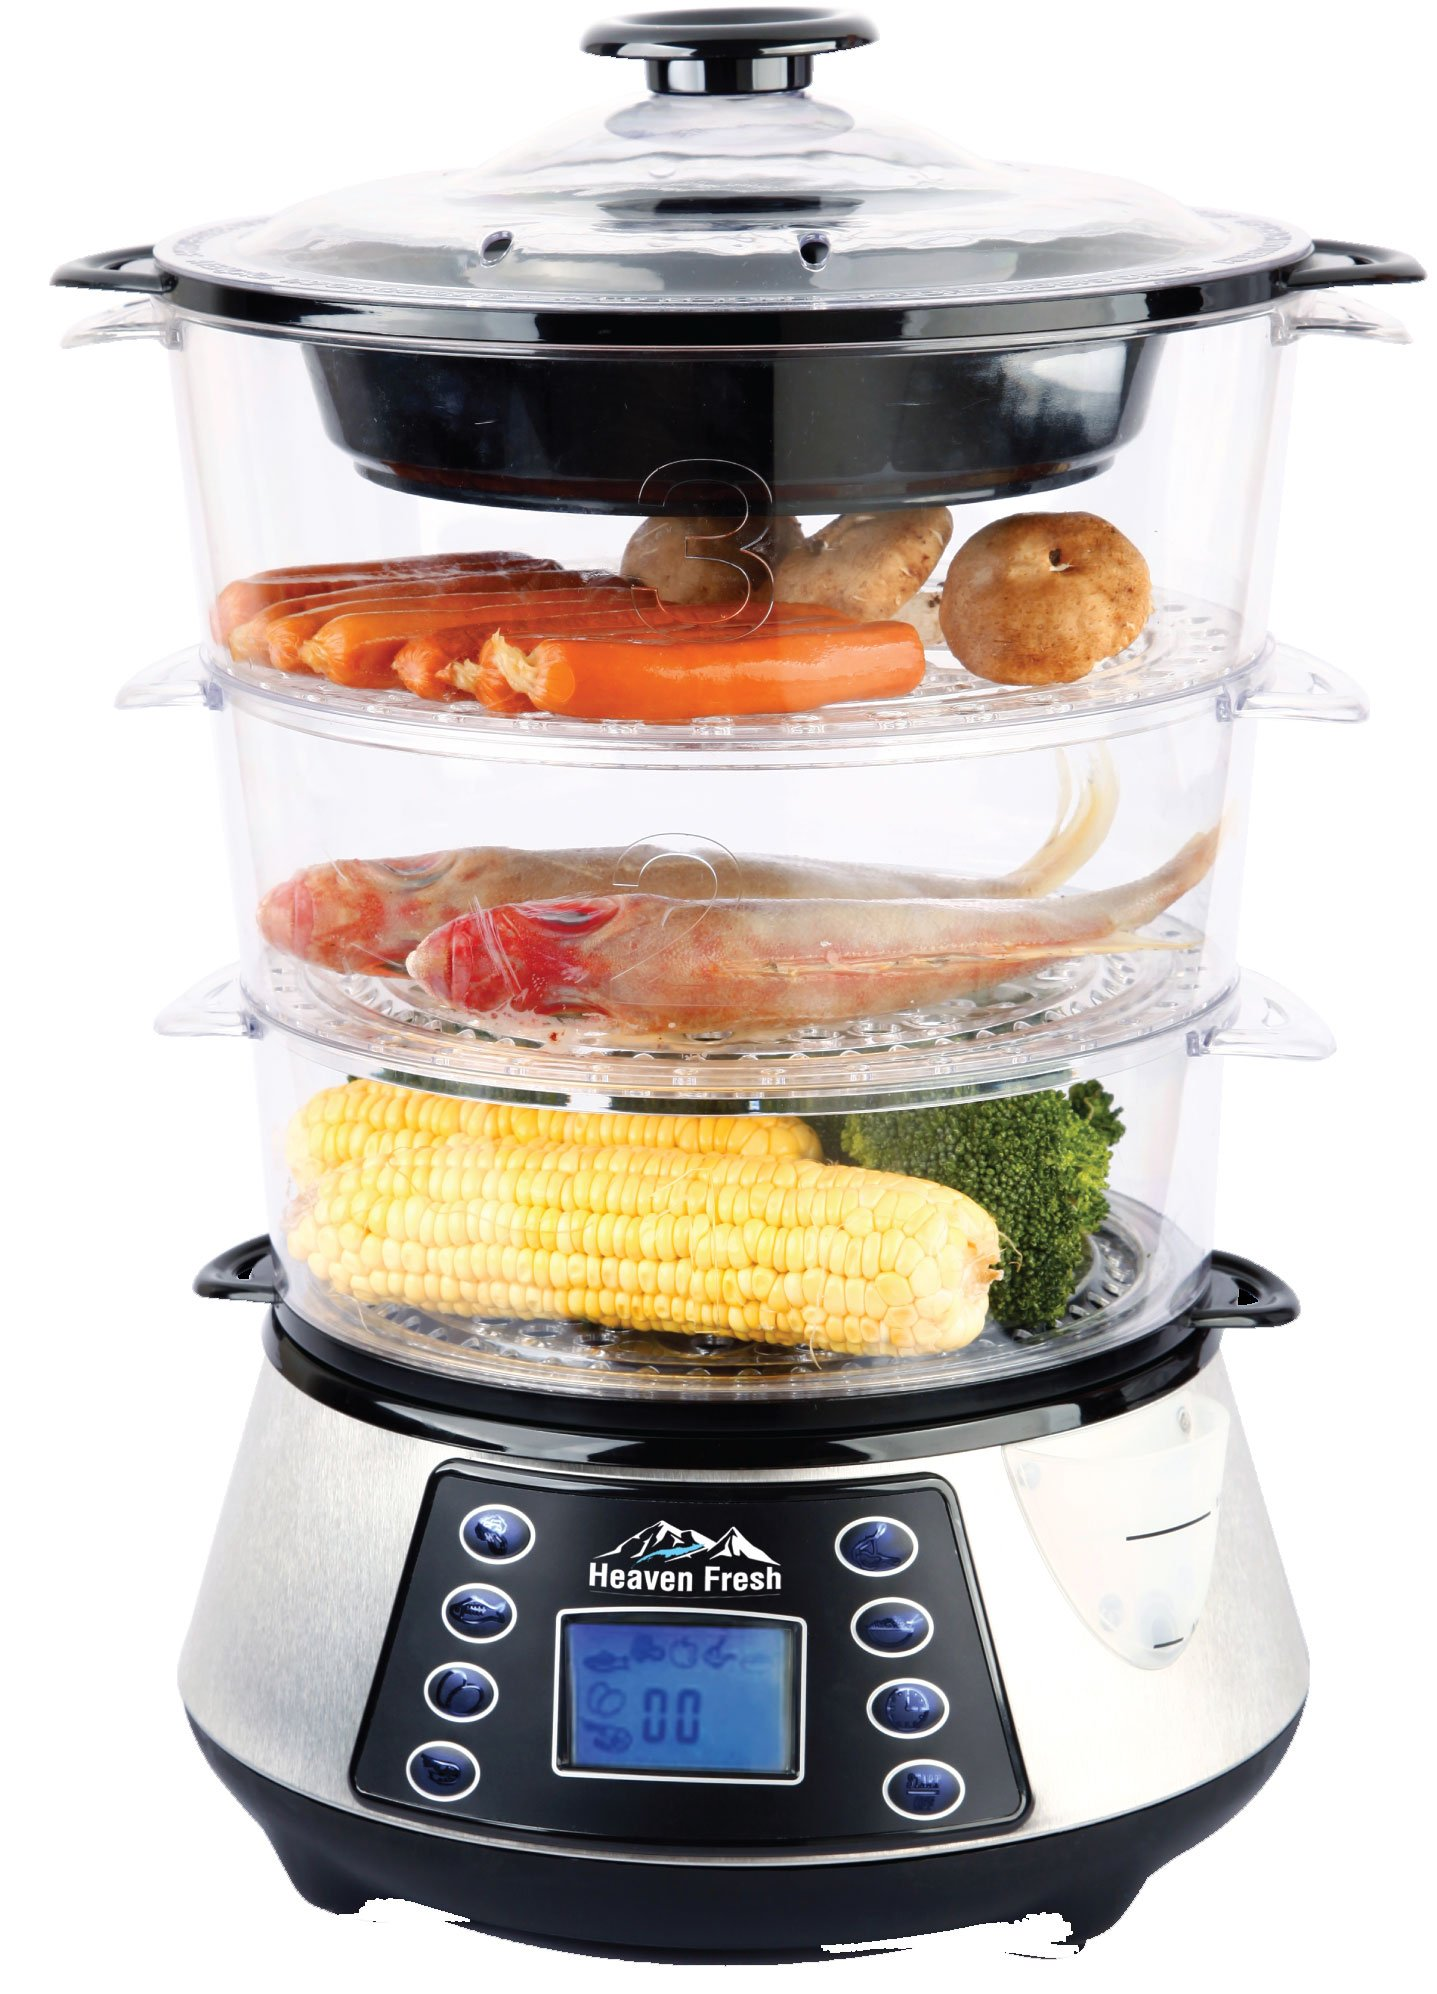 Heaven Fresh HF8333 3 Layer / Tier Stainless Steel Digital Food Steamer with Rice Cooking Bowl